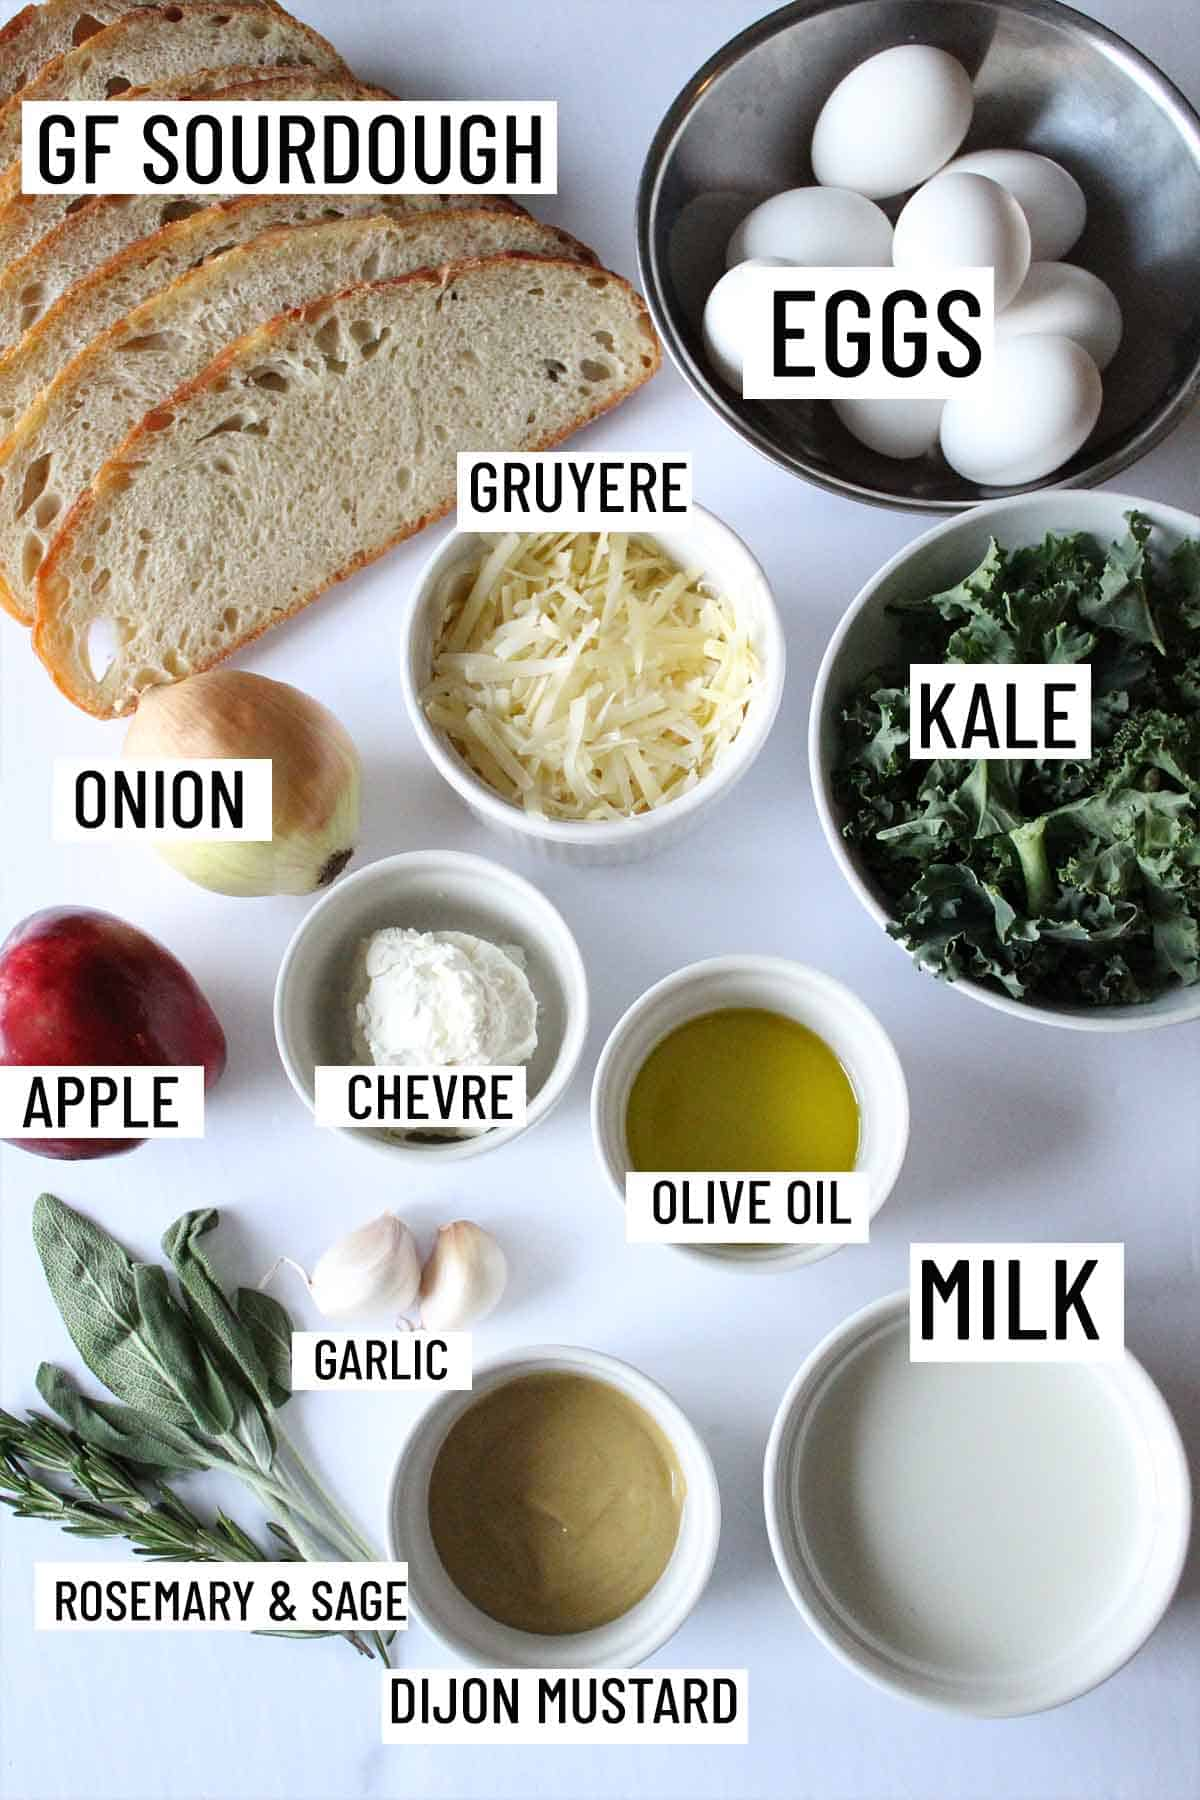 Birds eye view of strata ingredients including eggs, bread, kale, garlic, herbs, mustard, olive oil, onion, apple, and cheese.